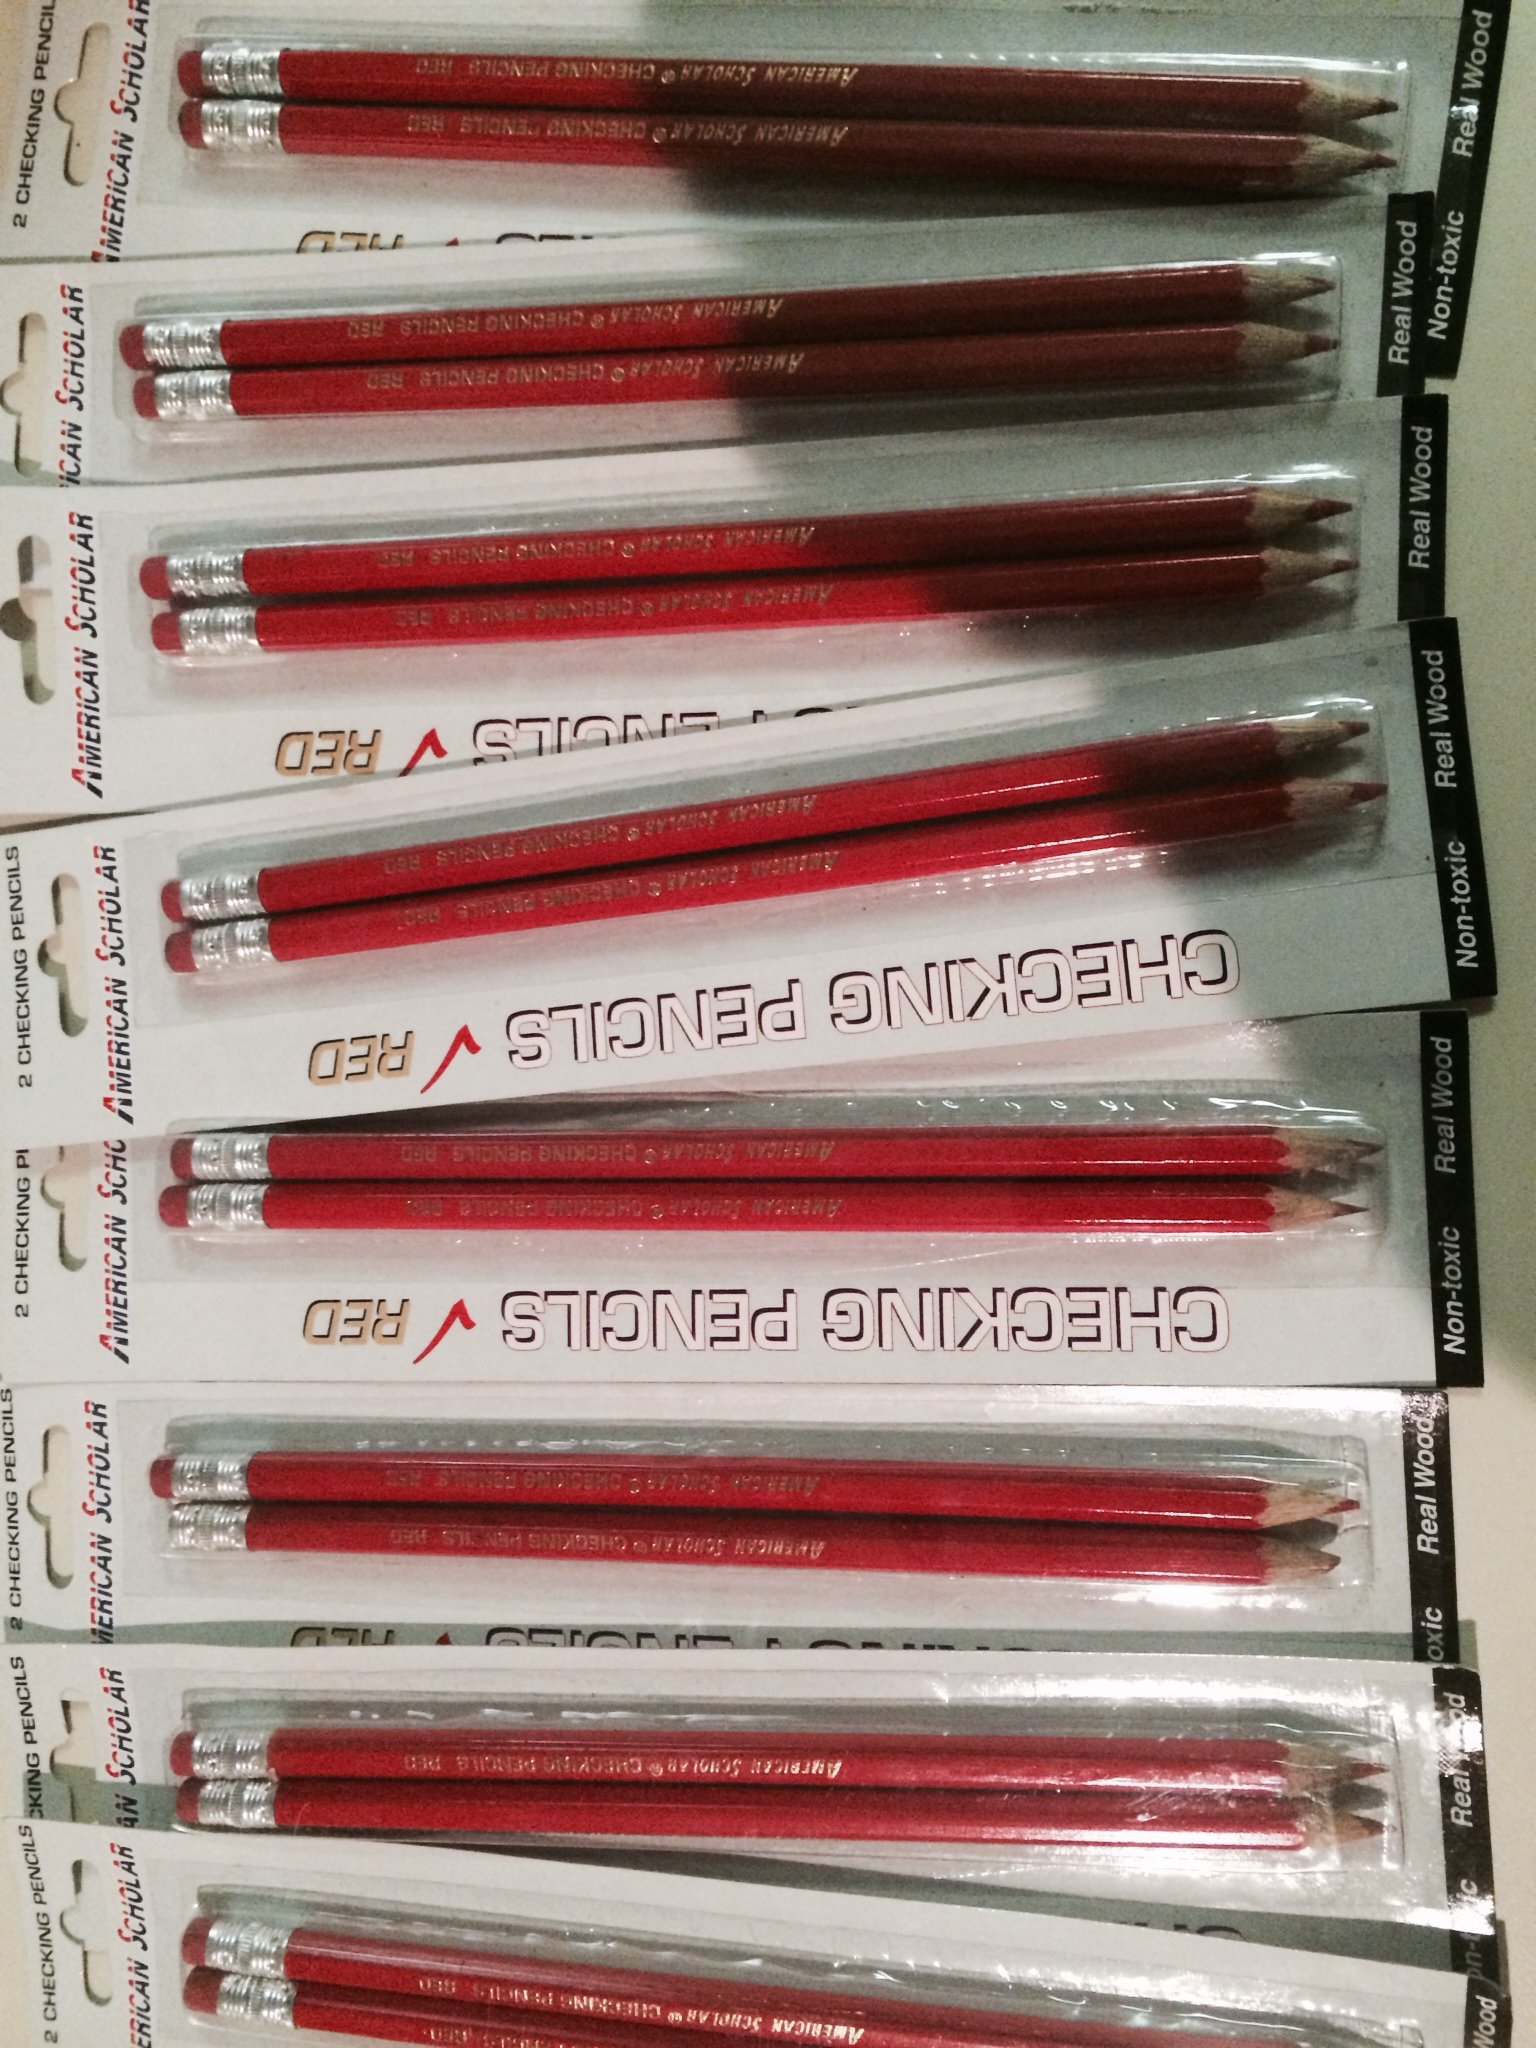 AMERICAN SCHOLAR CHECKING PENCIL WITH ERASER (RED) 48 PENCILS (24 PKX2)